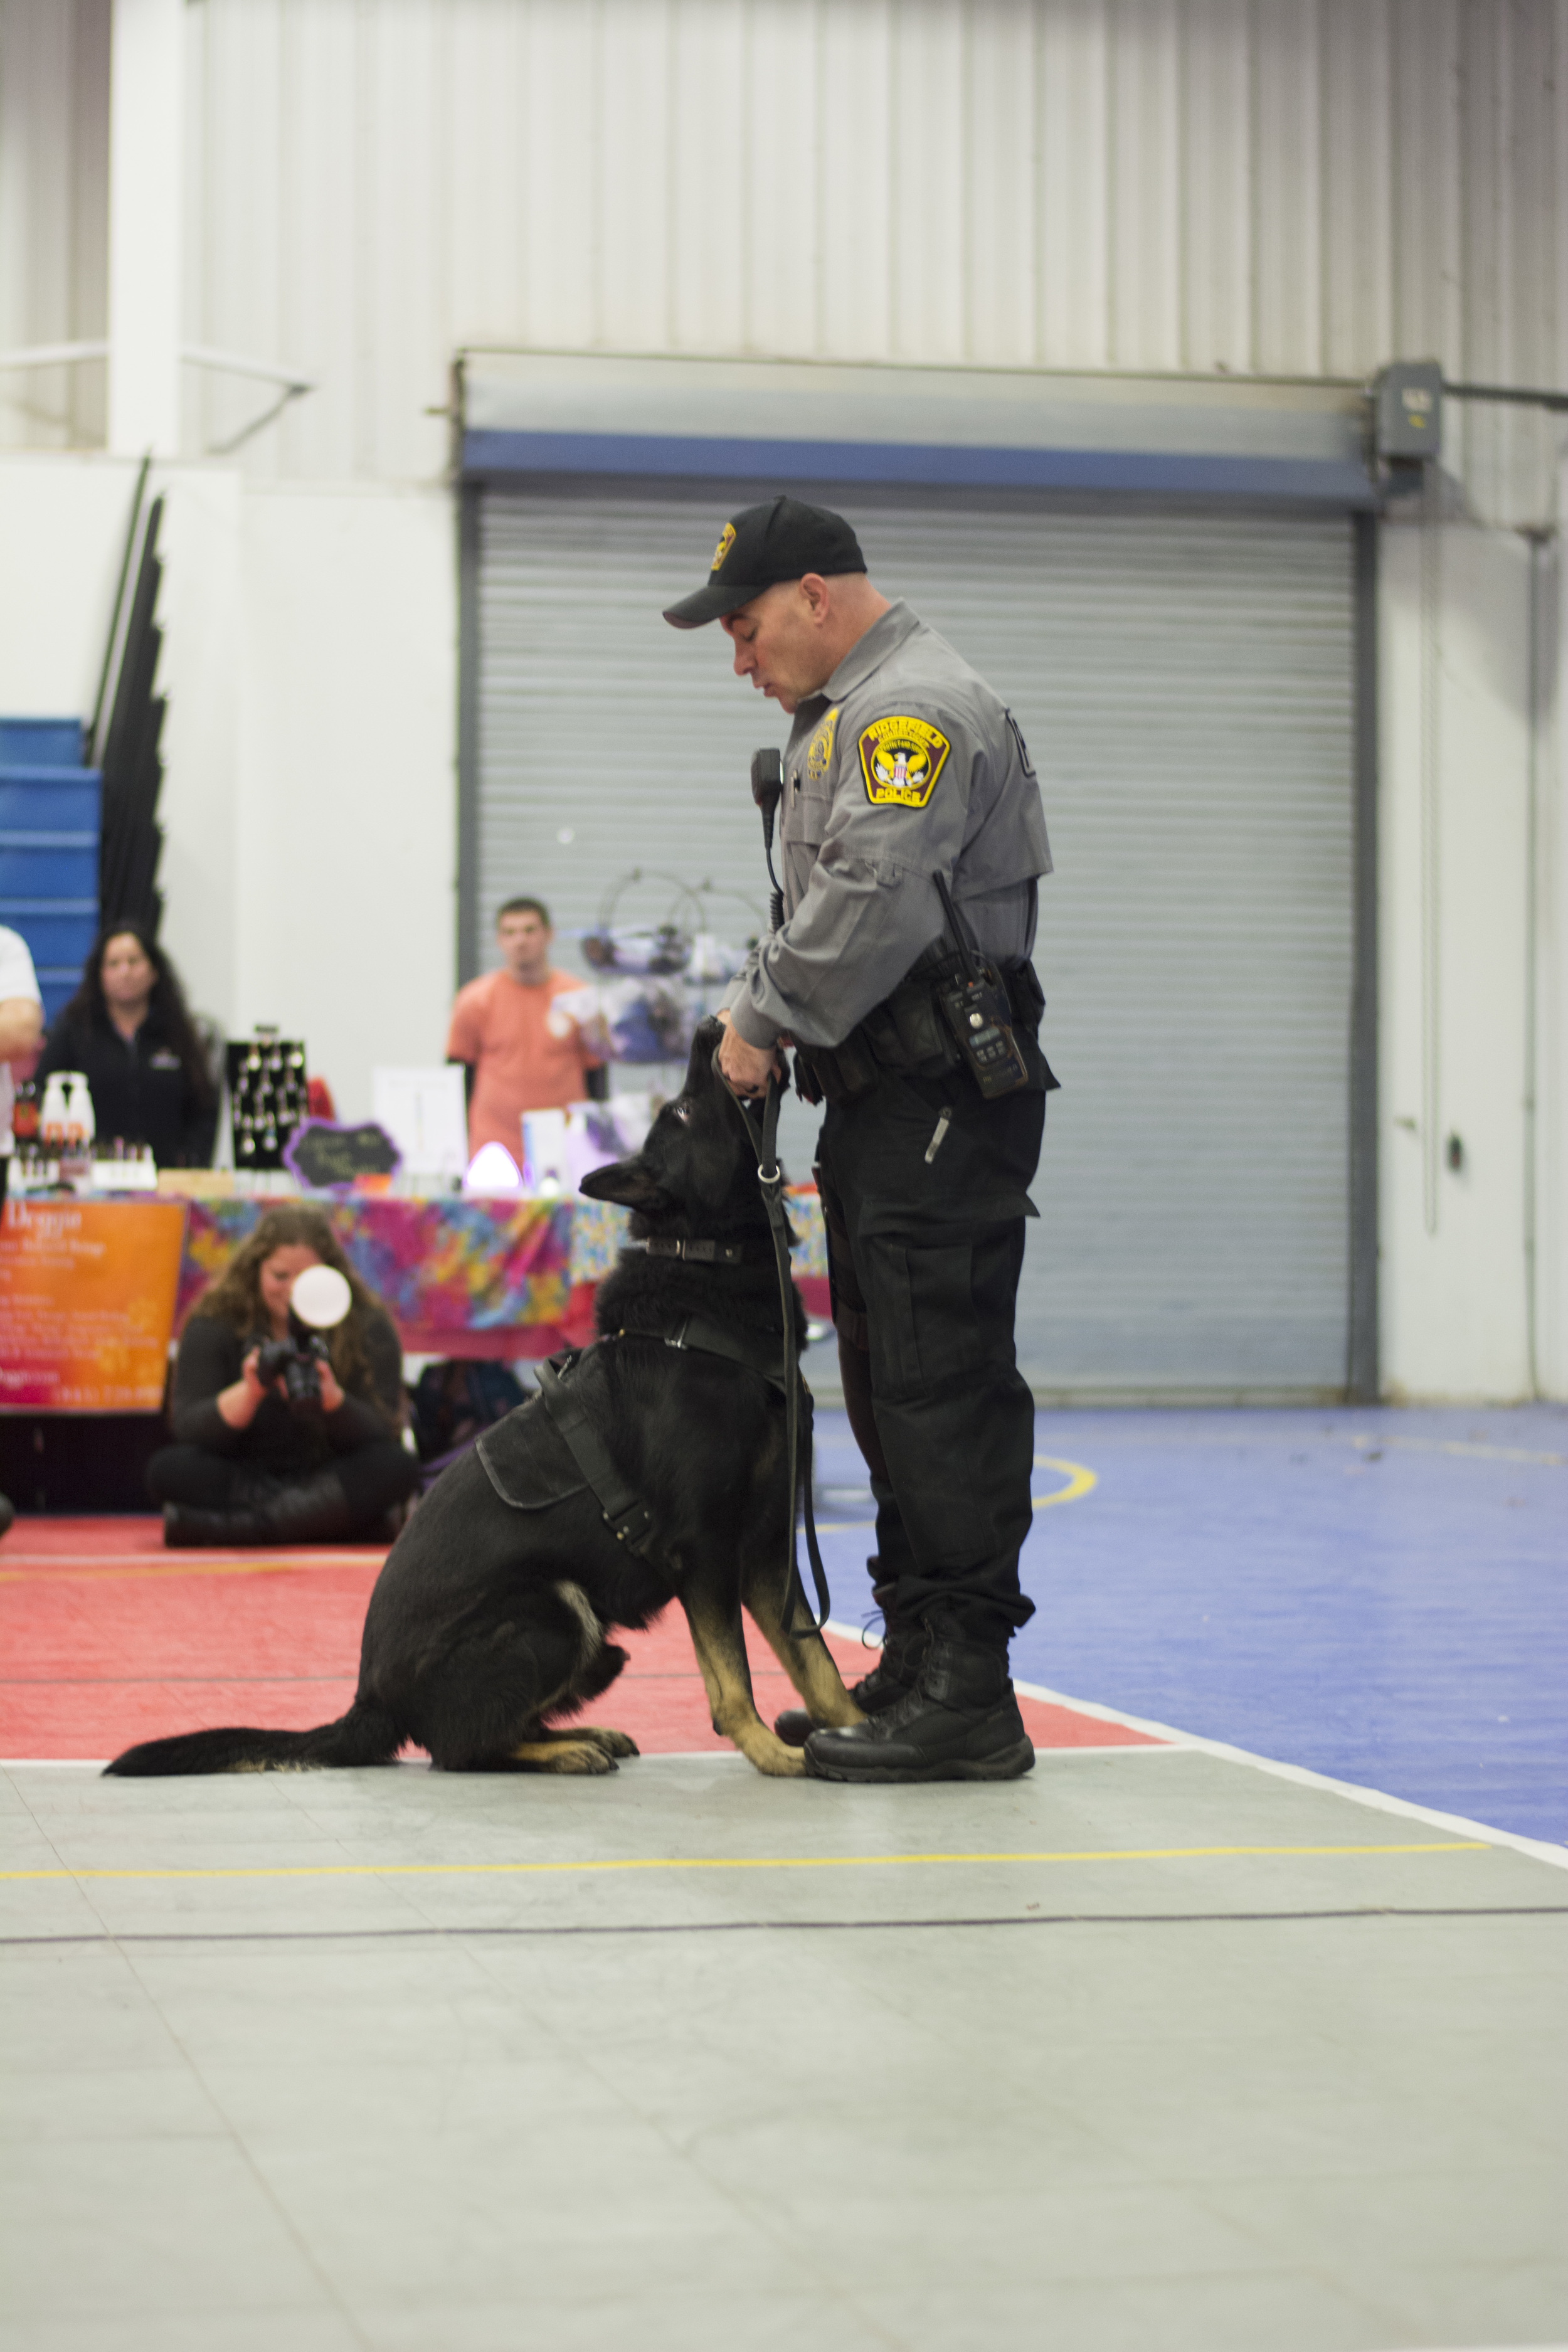 Officer from Ridgefield giving us a demo on K9 police dogs! Loki is an amazing police officer!